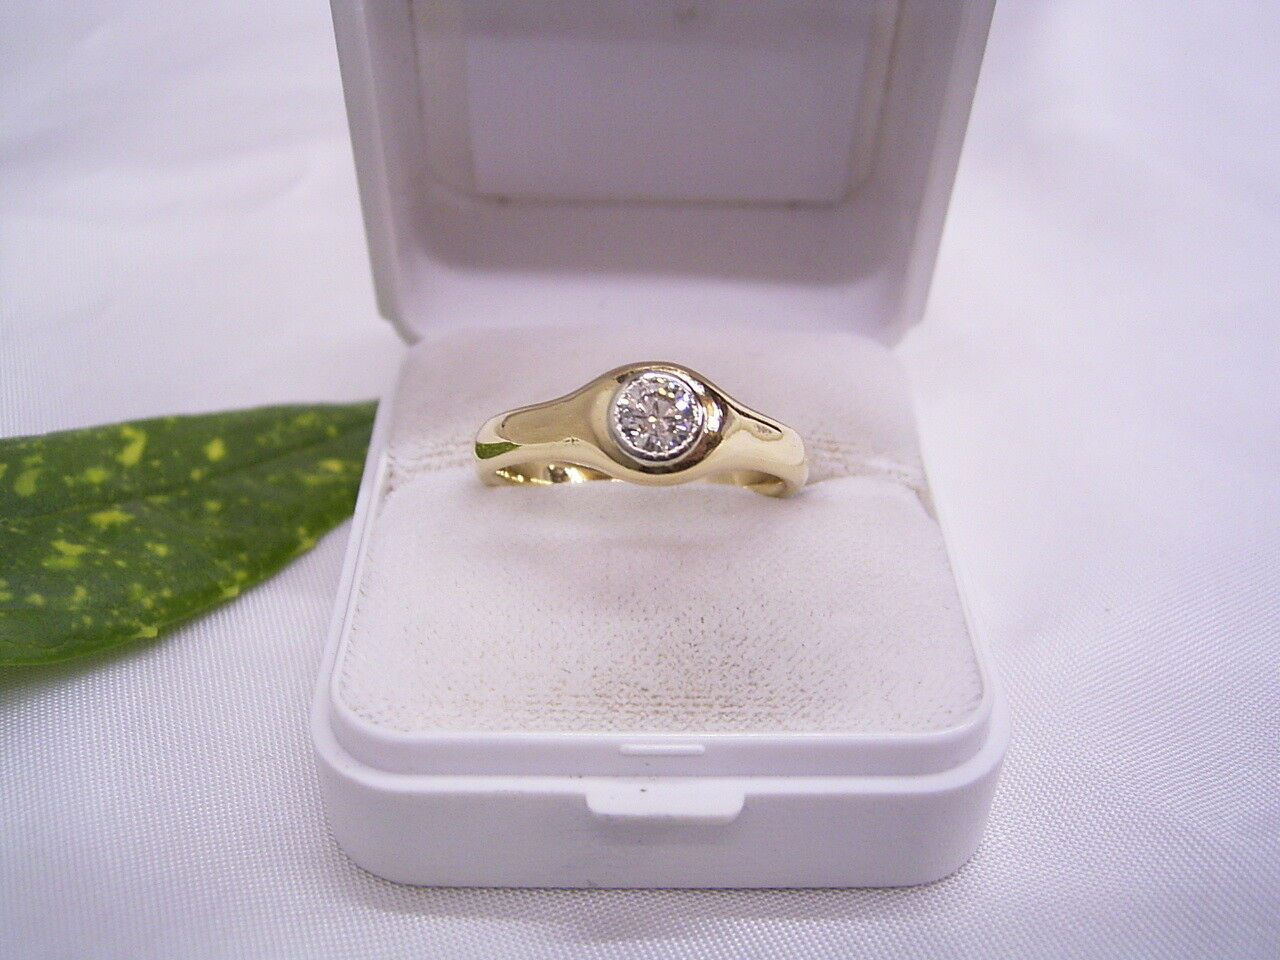 BRILLANT   DIAMANT-SOLITÄR-RING  ca 0,38 ct  750er gold   yellowgold  GR.  61 19,4